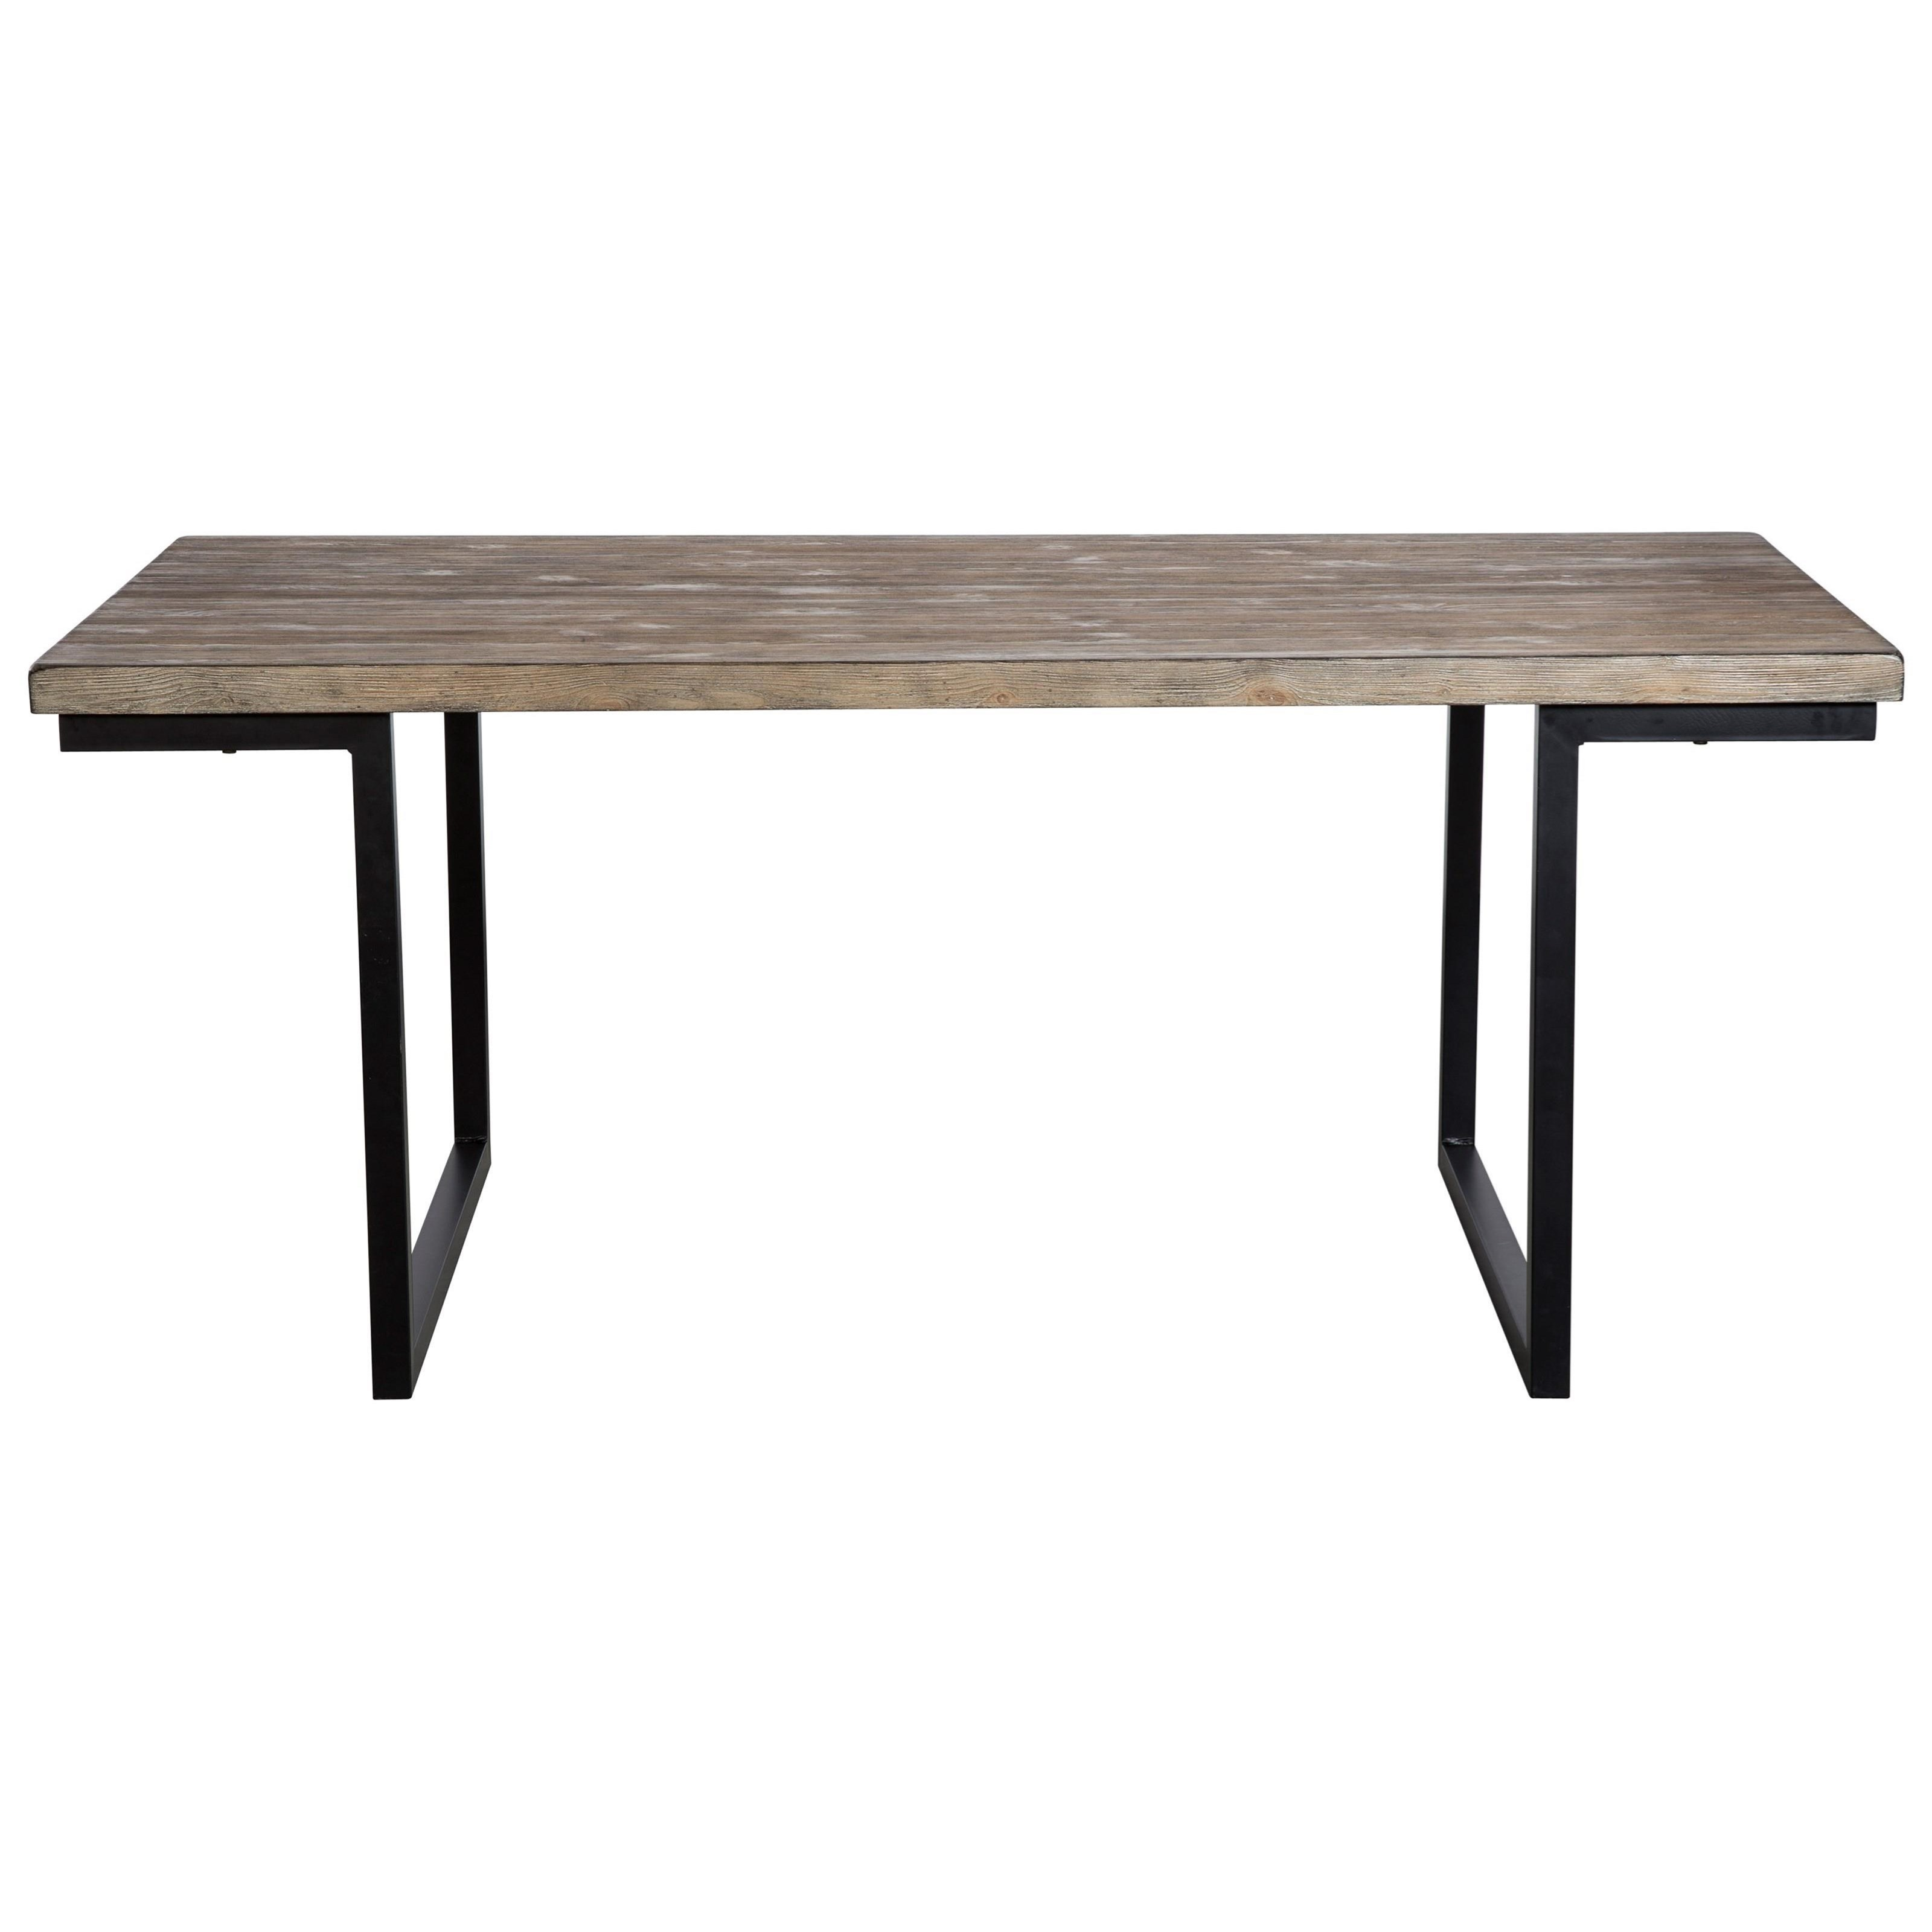 Cresent Fine Furniture West End Solid Spruce Table With